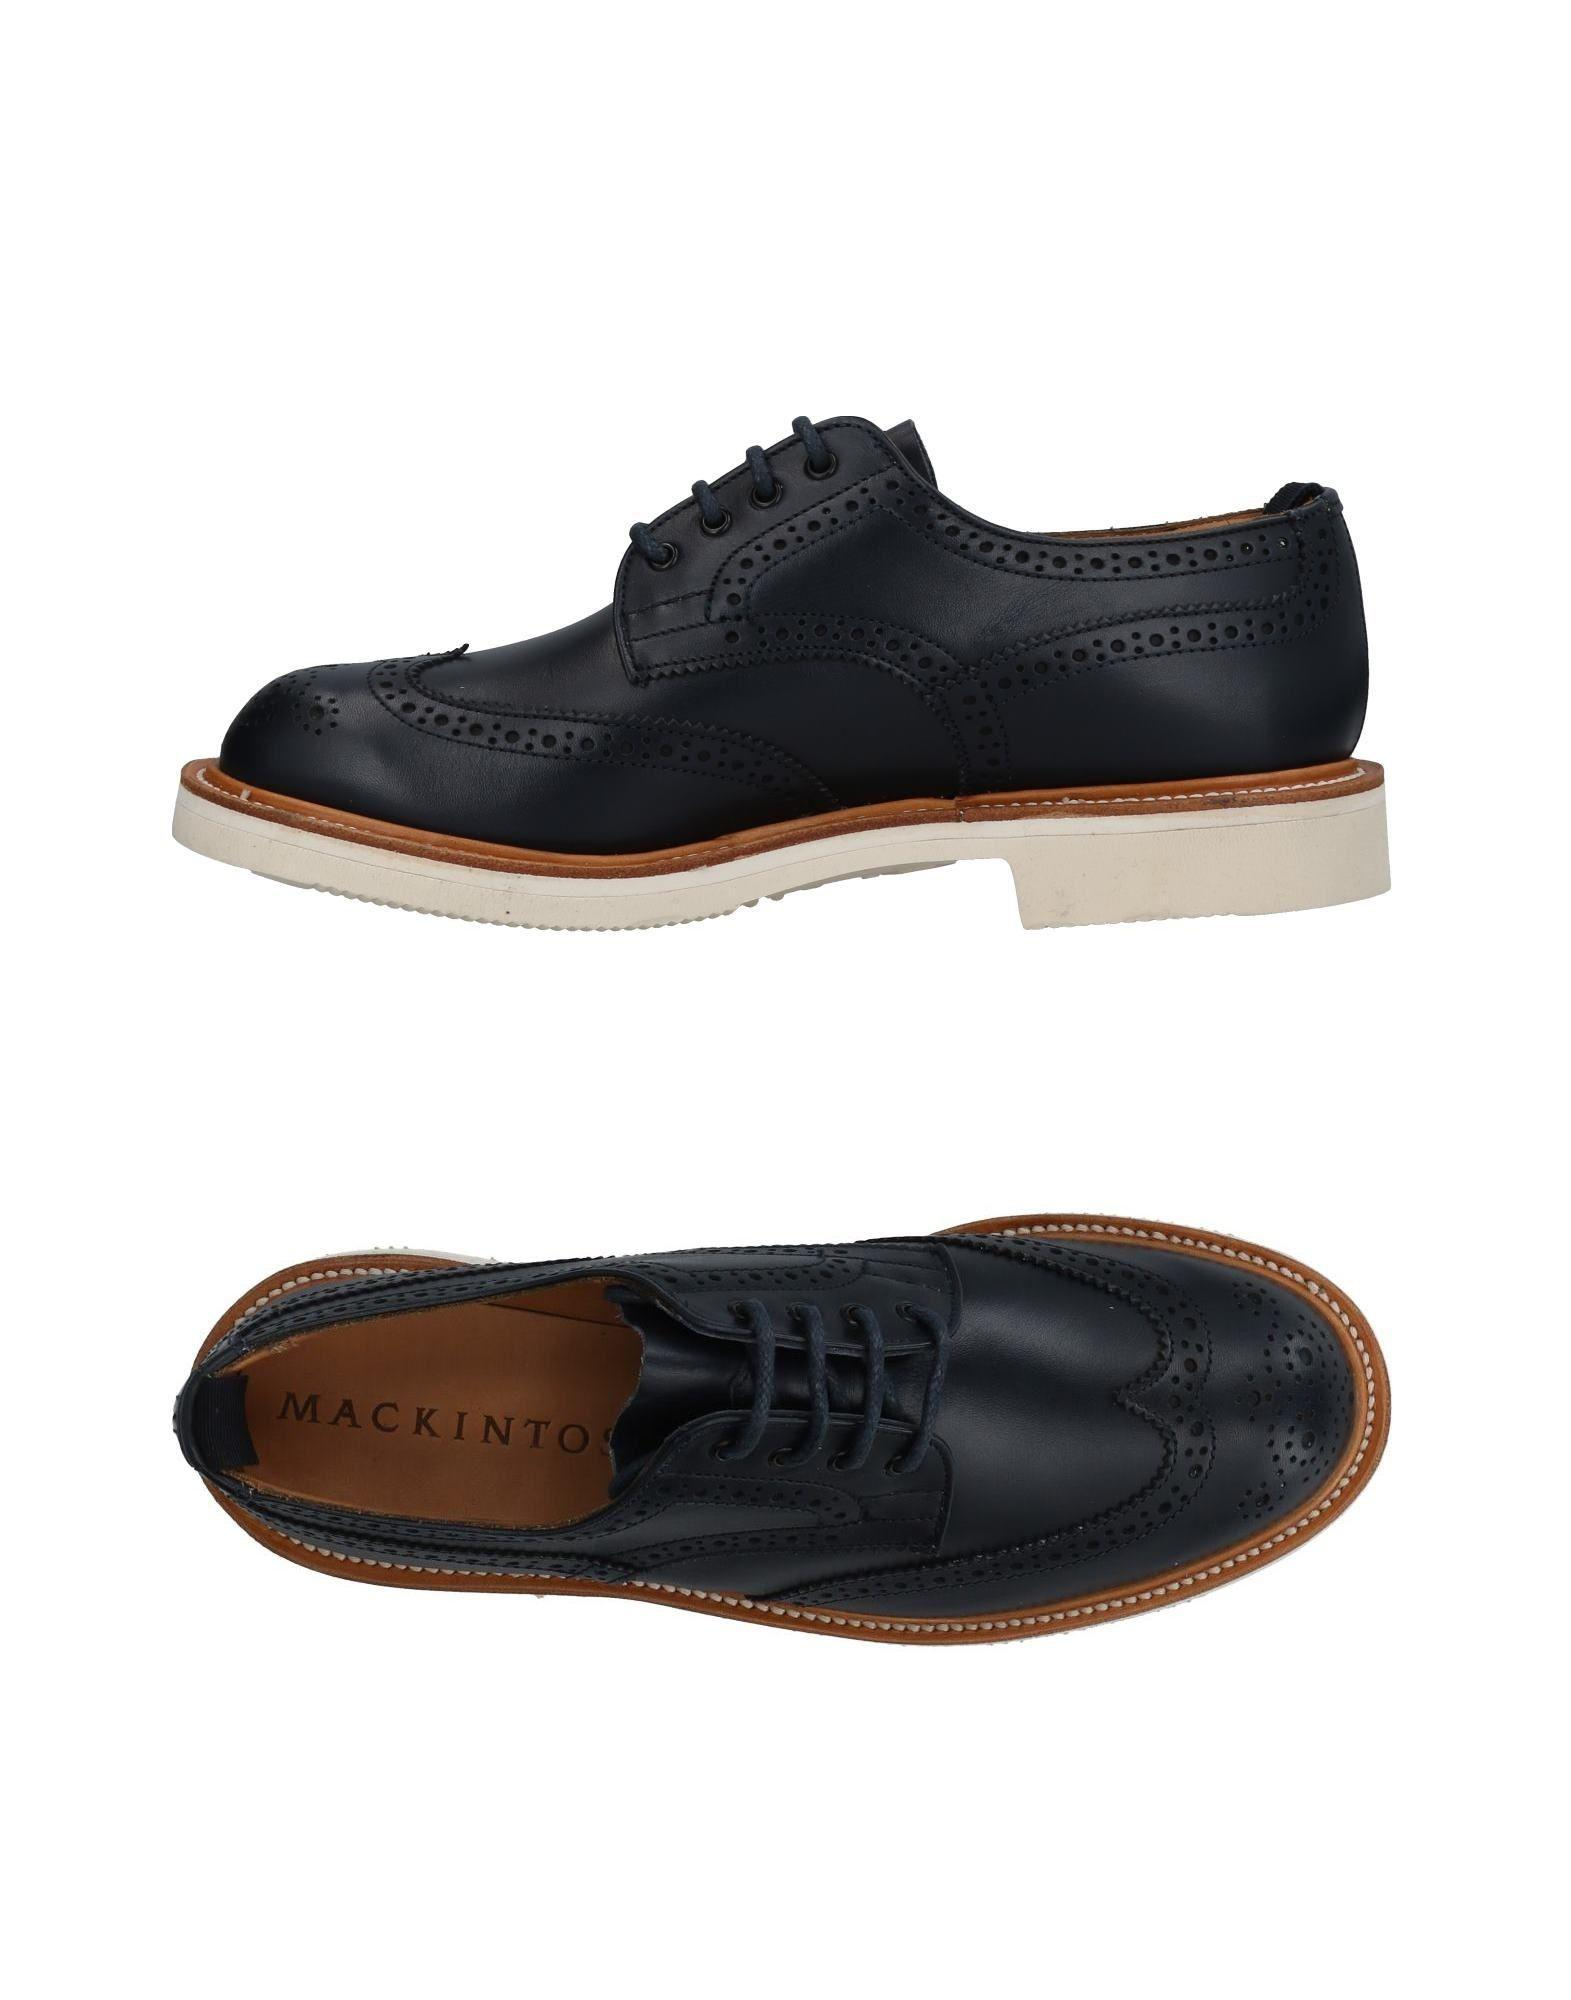 FOOTWEAR - Lace-up shoes Mackintosh